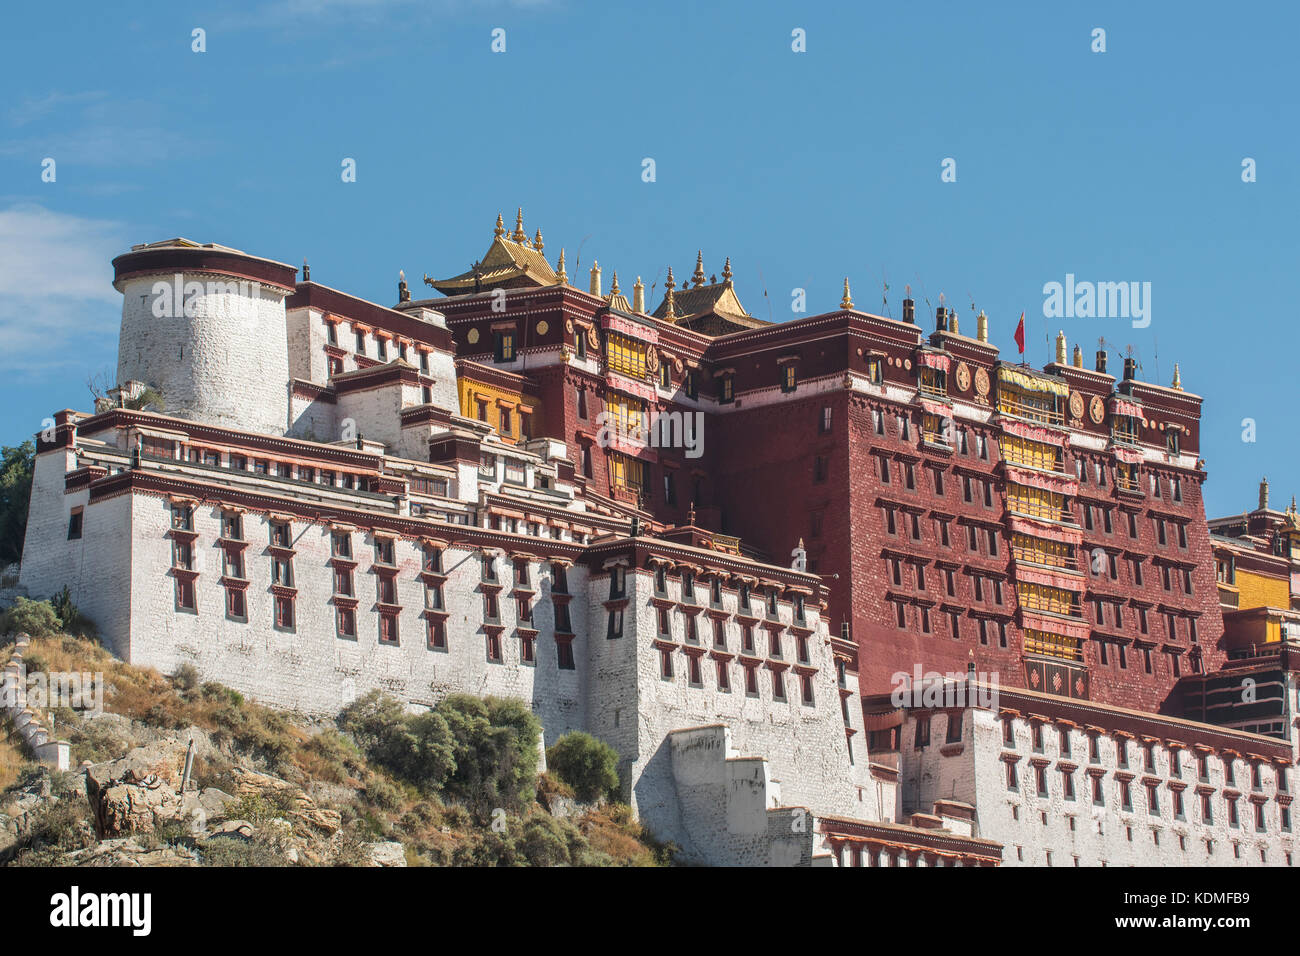 Potala Palace, Lhasa, Tibet, China - Stock Image